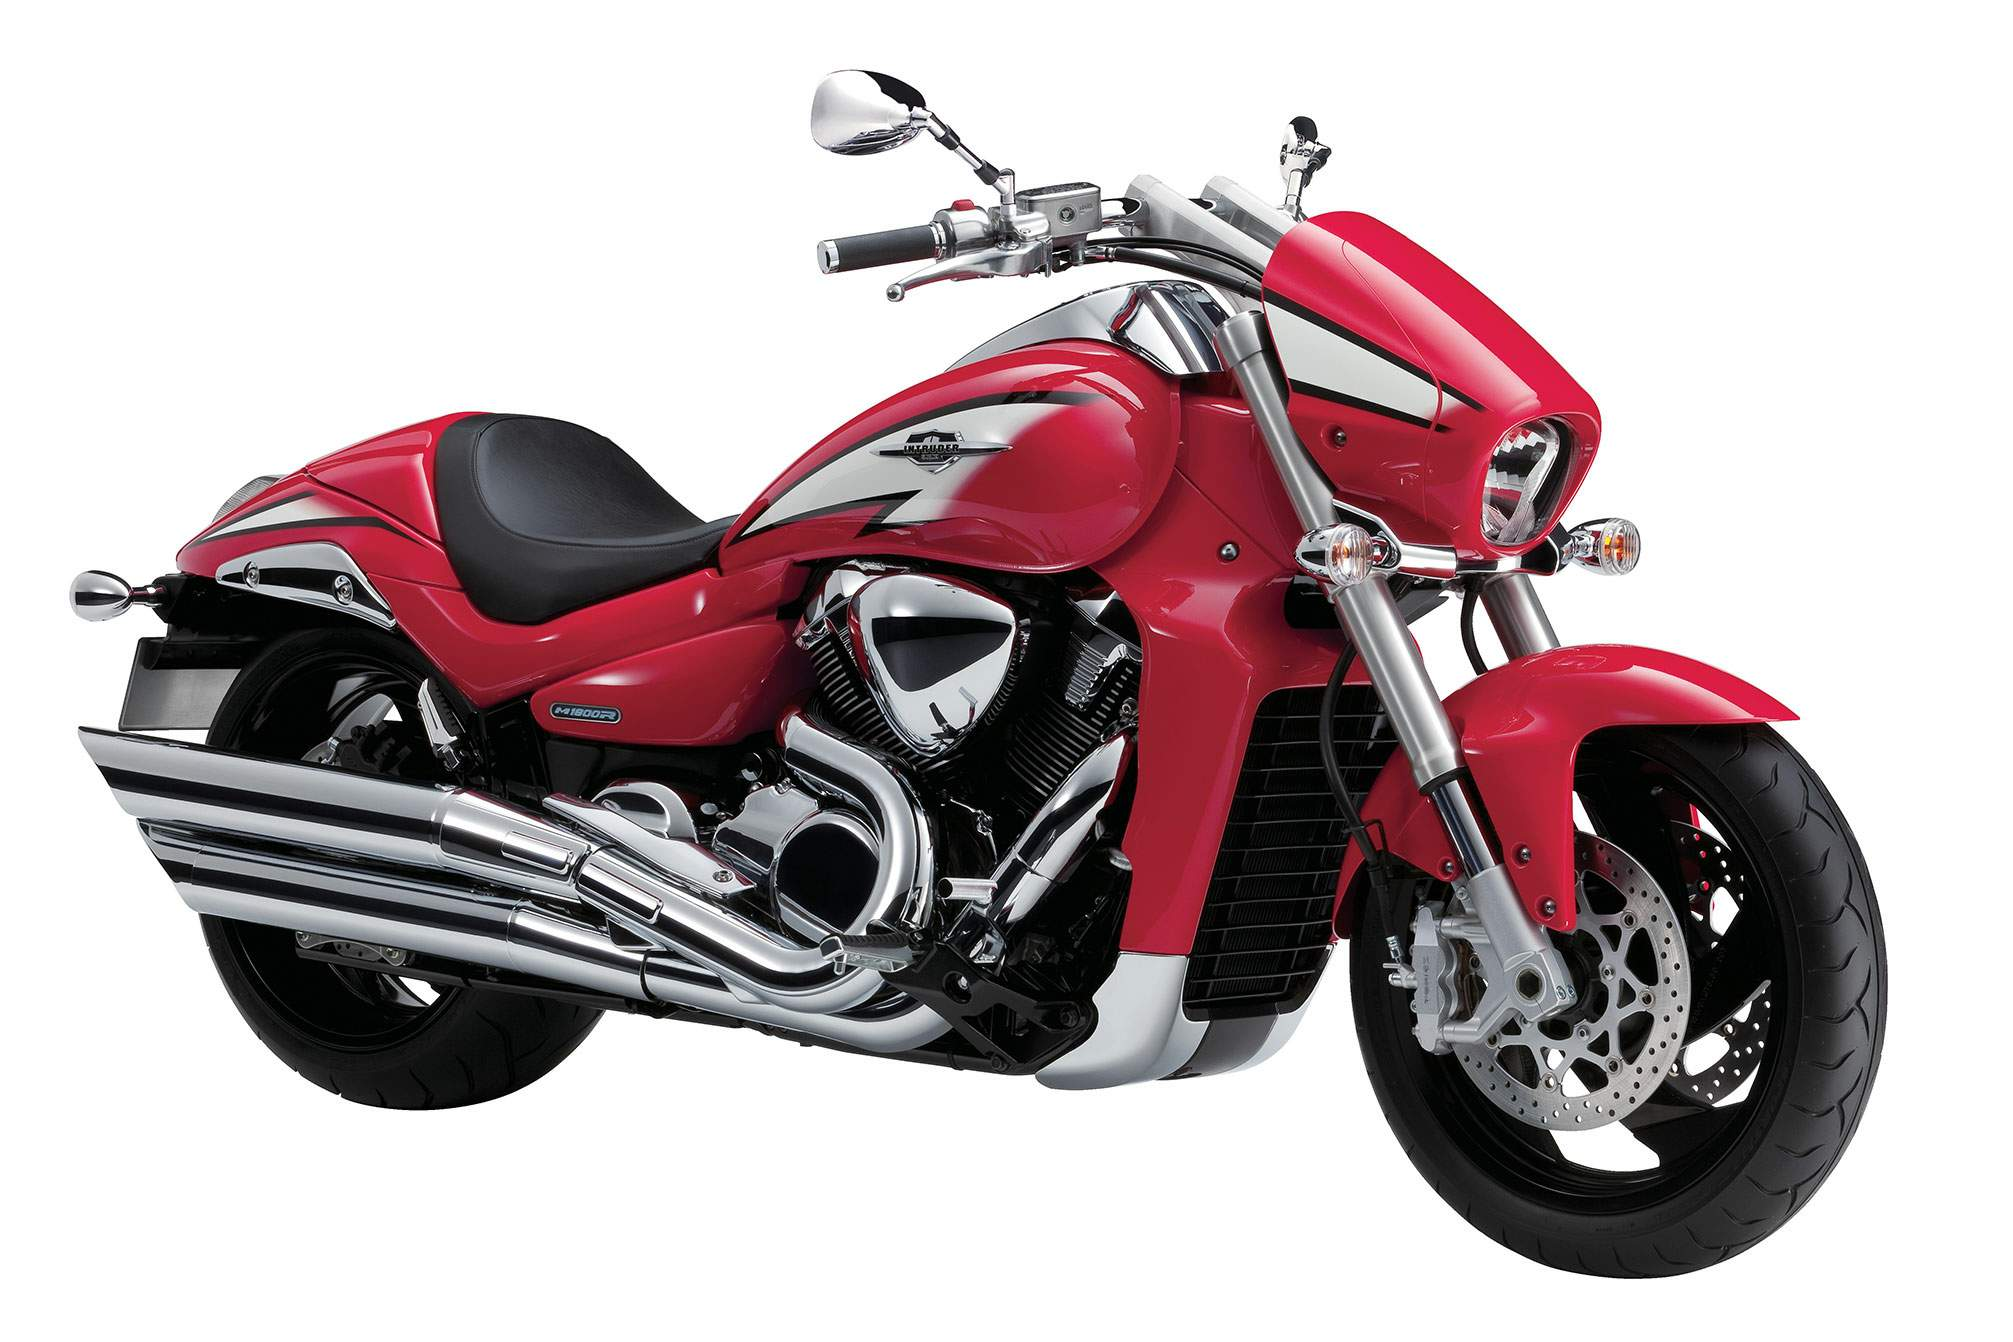 Мотоцикл Suzuki Intruder M109RZ Limited Edition 2013